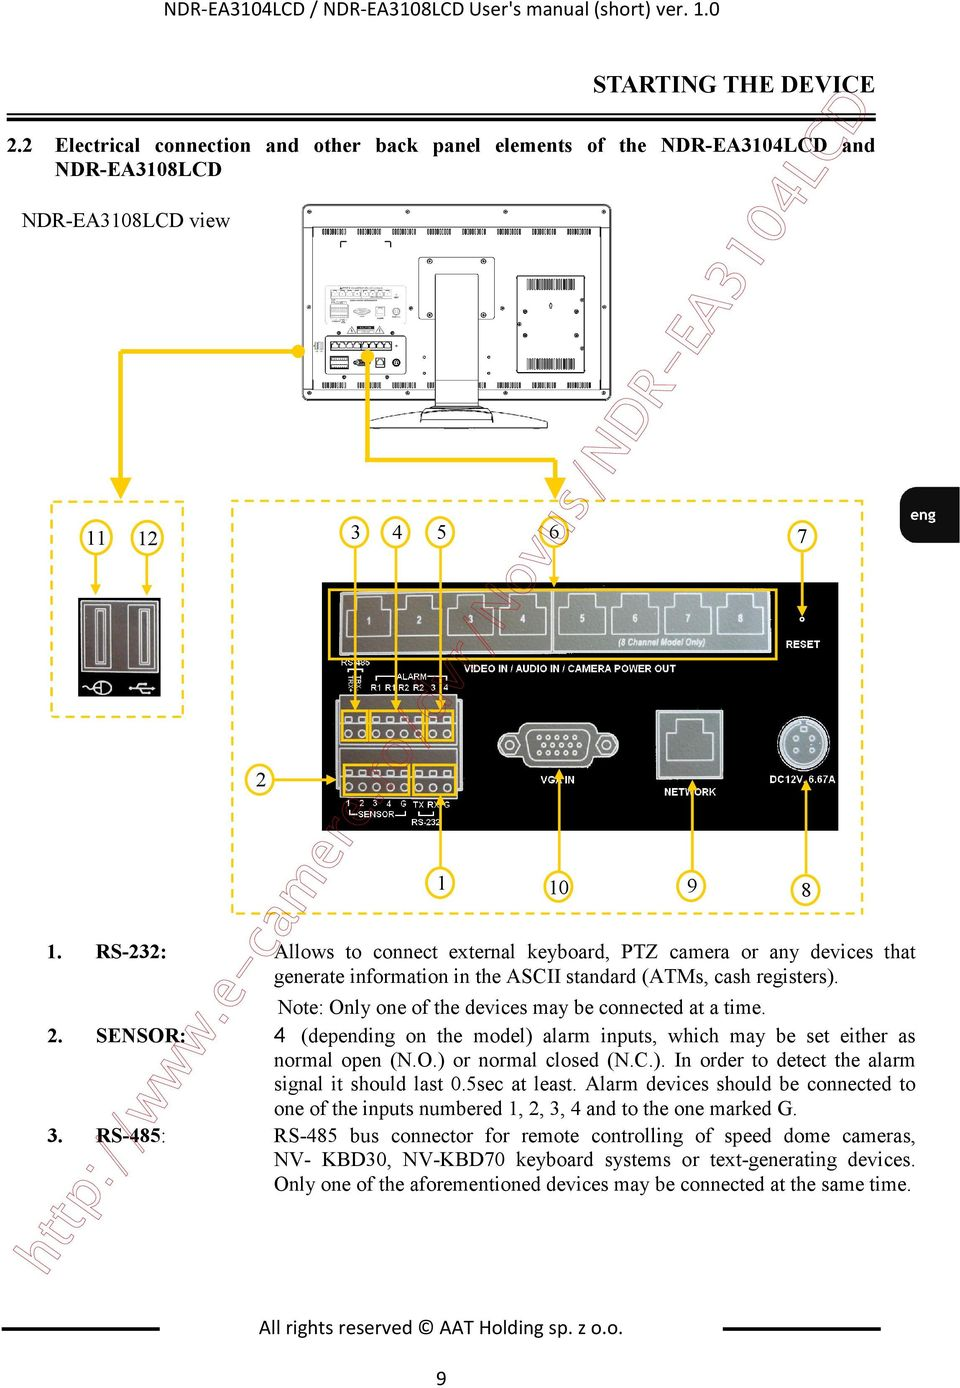 RS-232: Allows to connect external keyboard, PTZ camera or any devices that generate information in the ASCII standard (ATMs, cash registers). Note: Only one of the devices may be connected at a time.